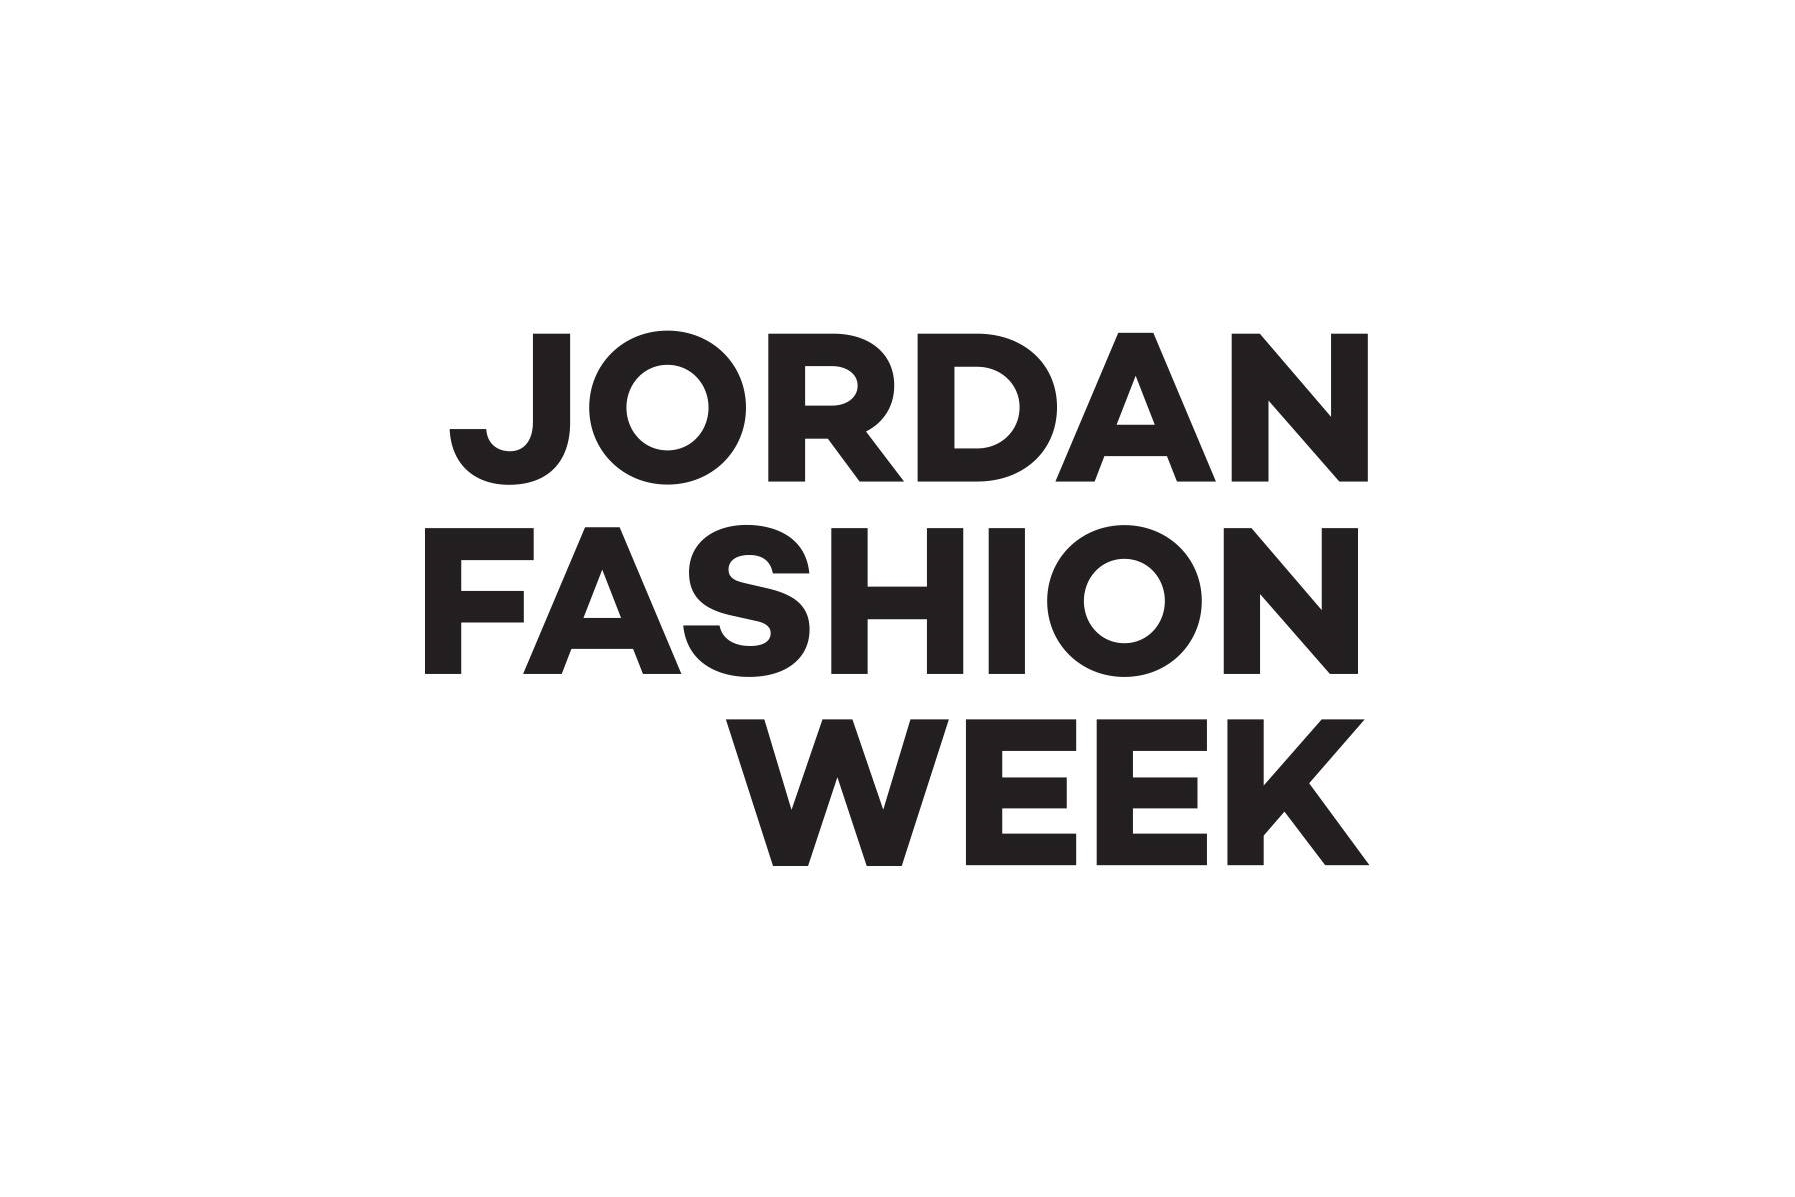 Jordan fashion week